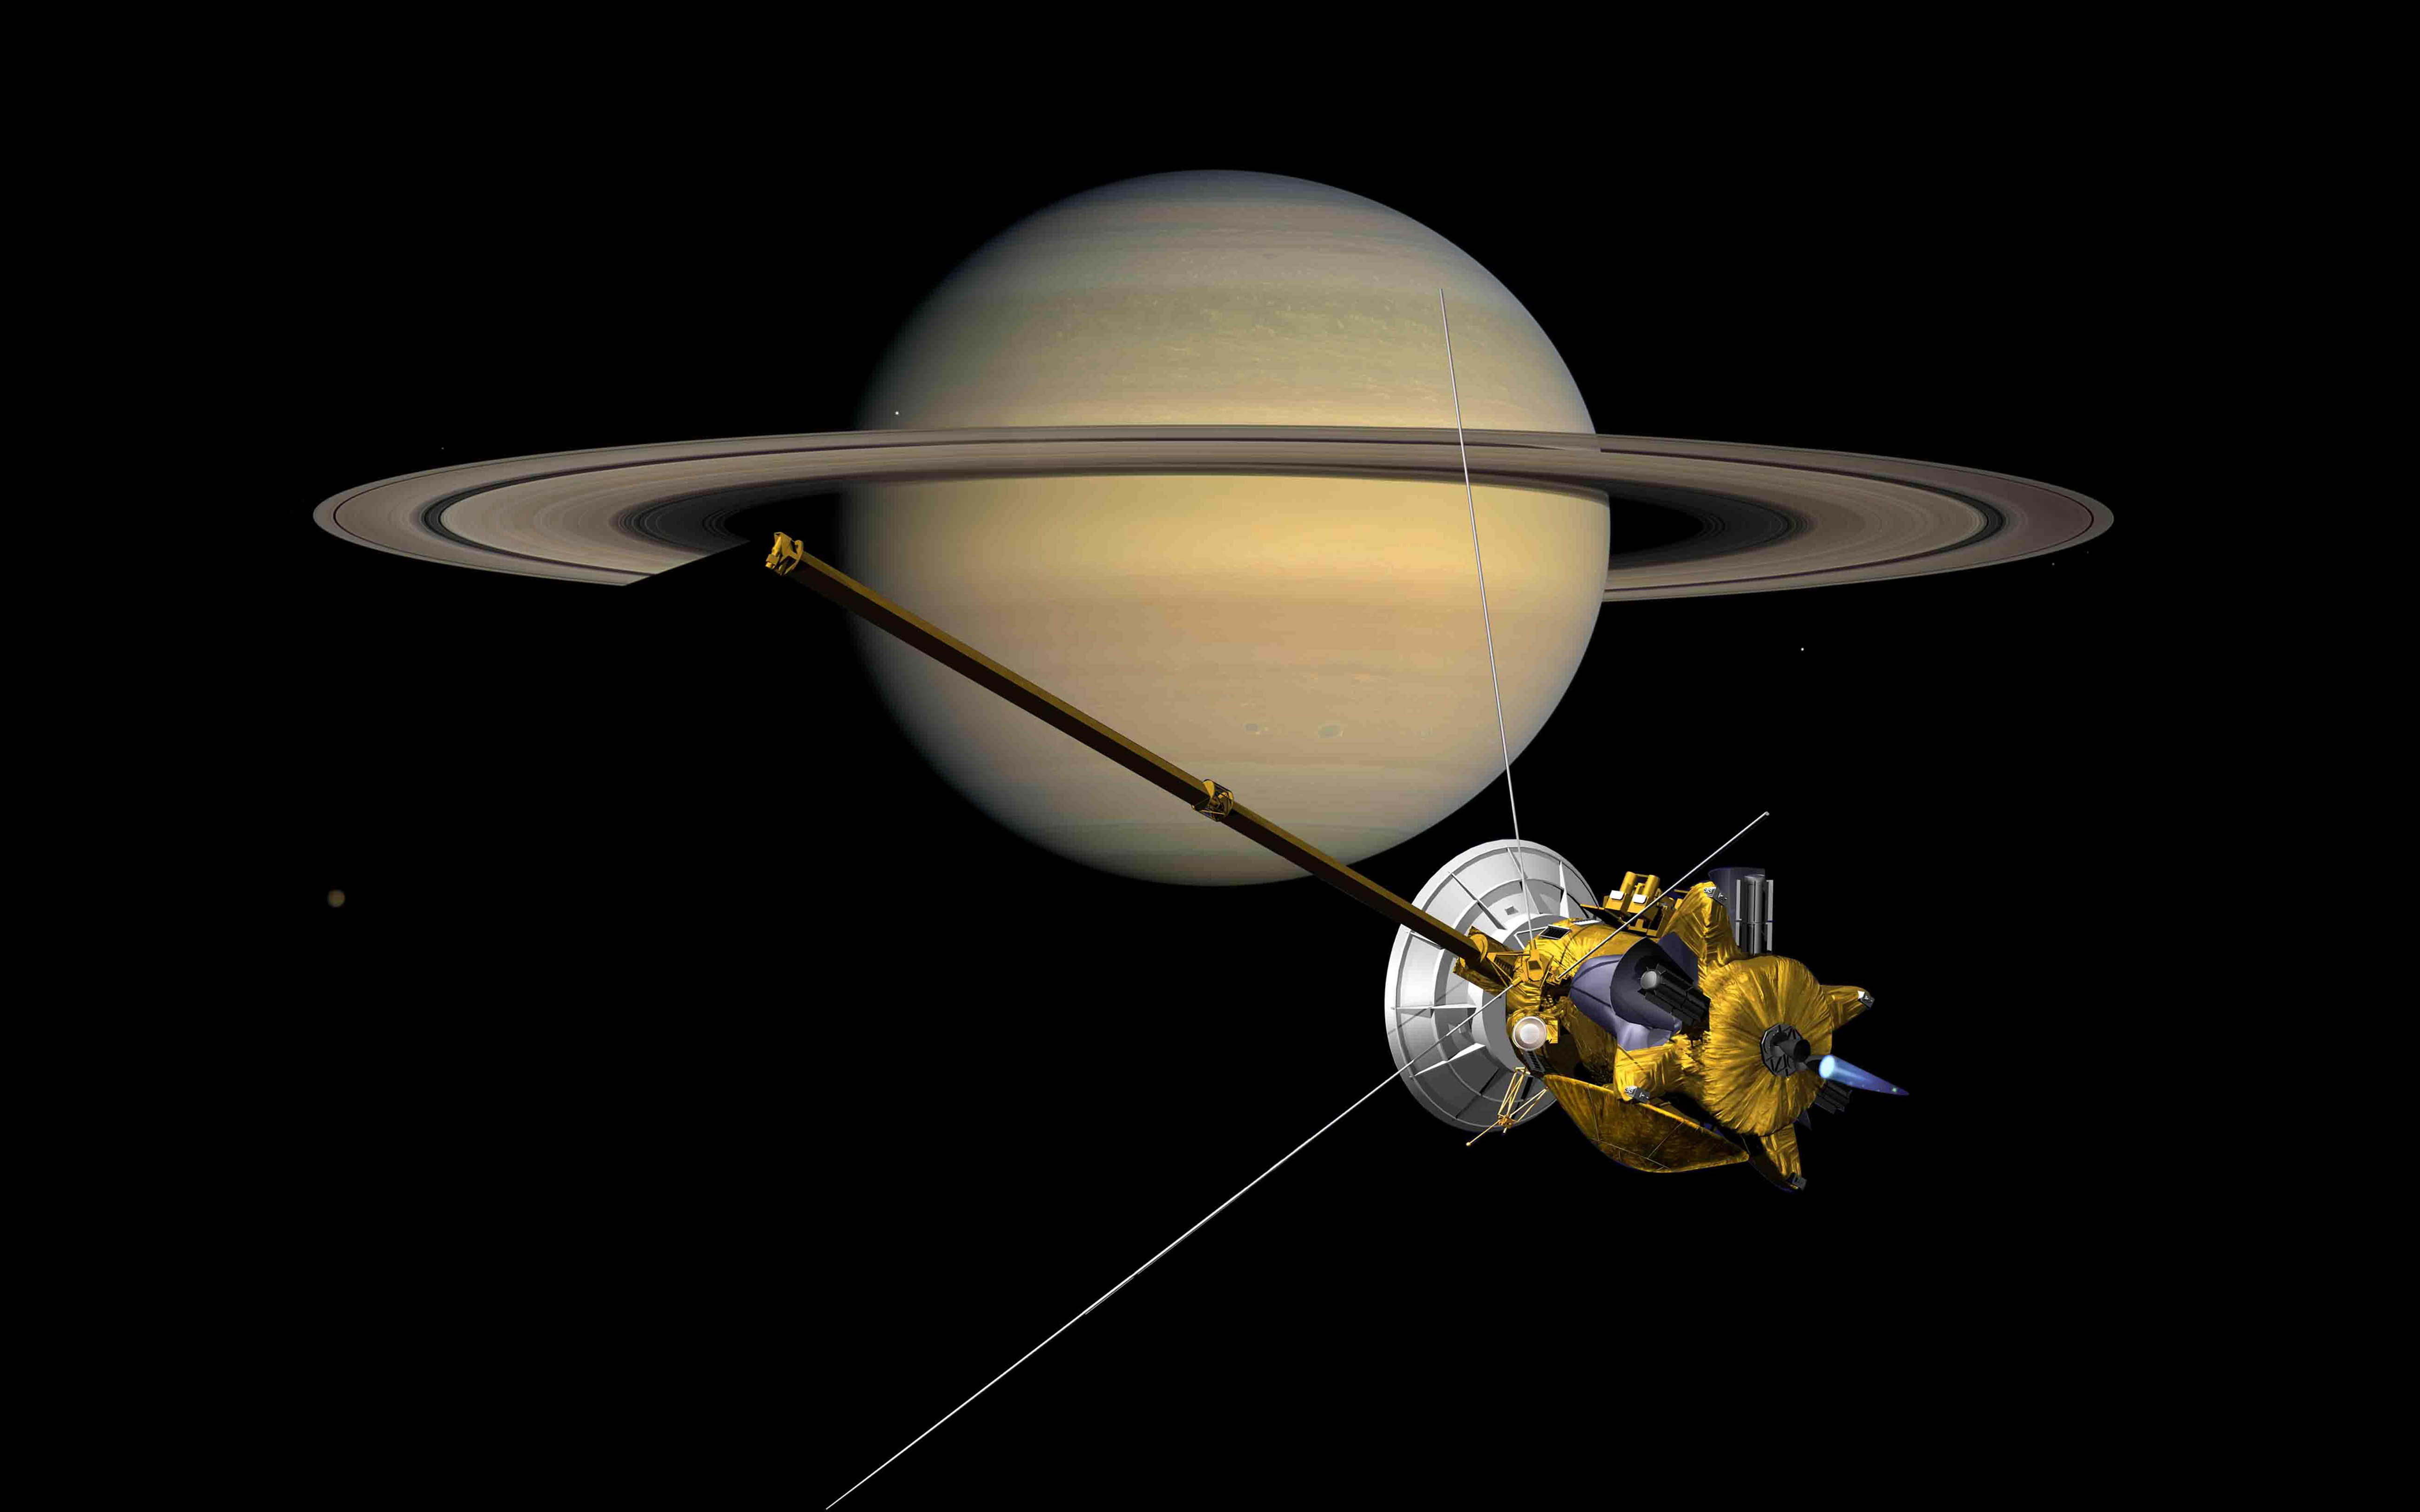 Futuristic Iphone X Wallpaper Probe Cassini Front Of The Planet Saturn With Rings